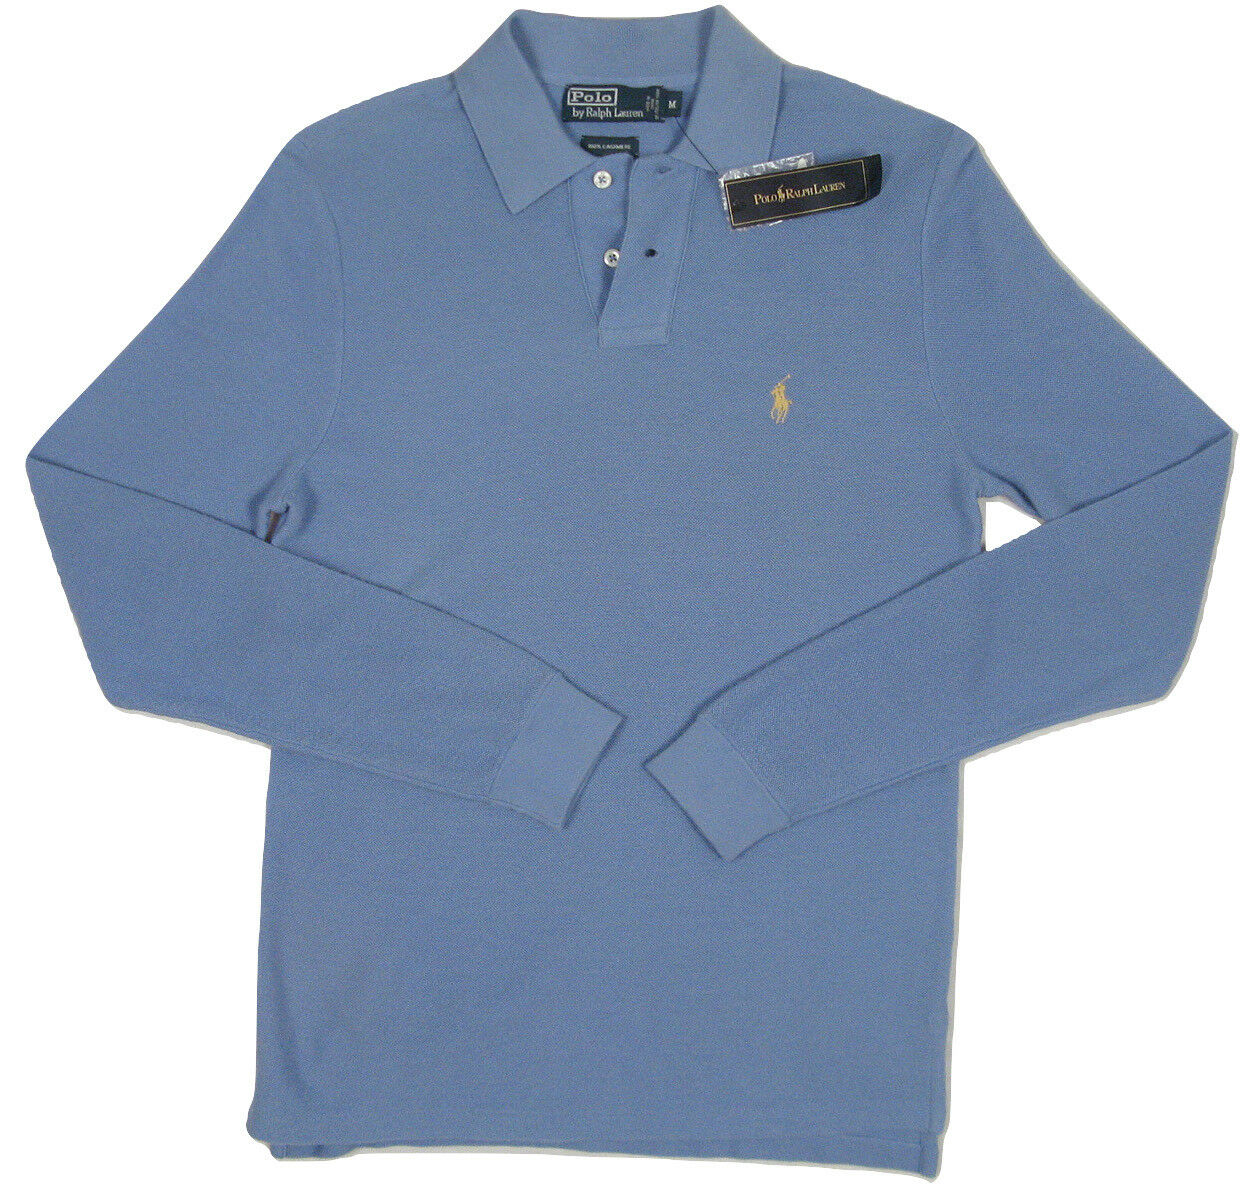 NEW Polo Ralph Lauren 100% Cashmere Polo Shirt   M VERY SLIM FIT LIKE SM OR XS